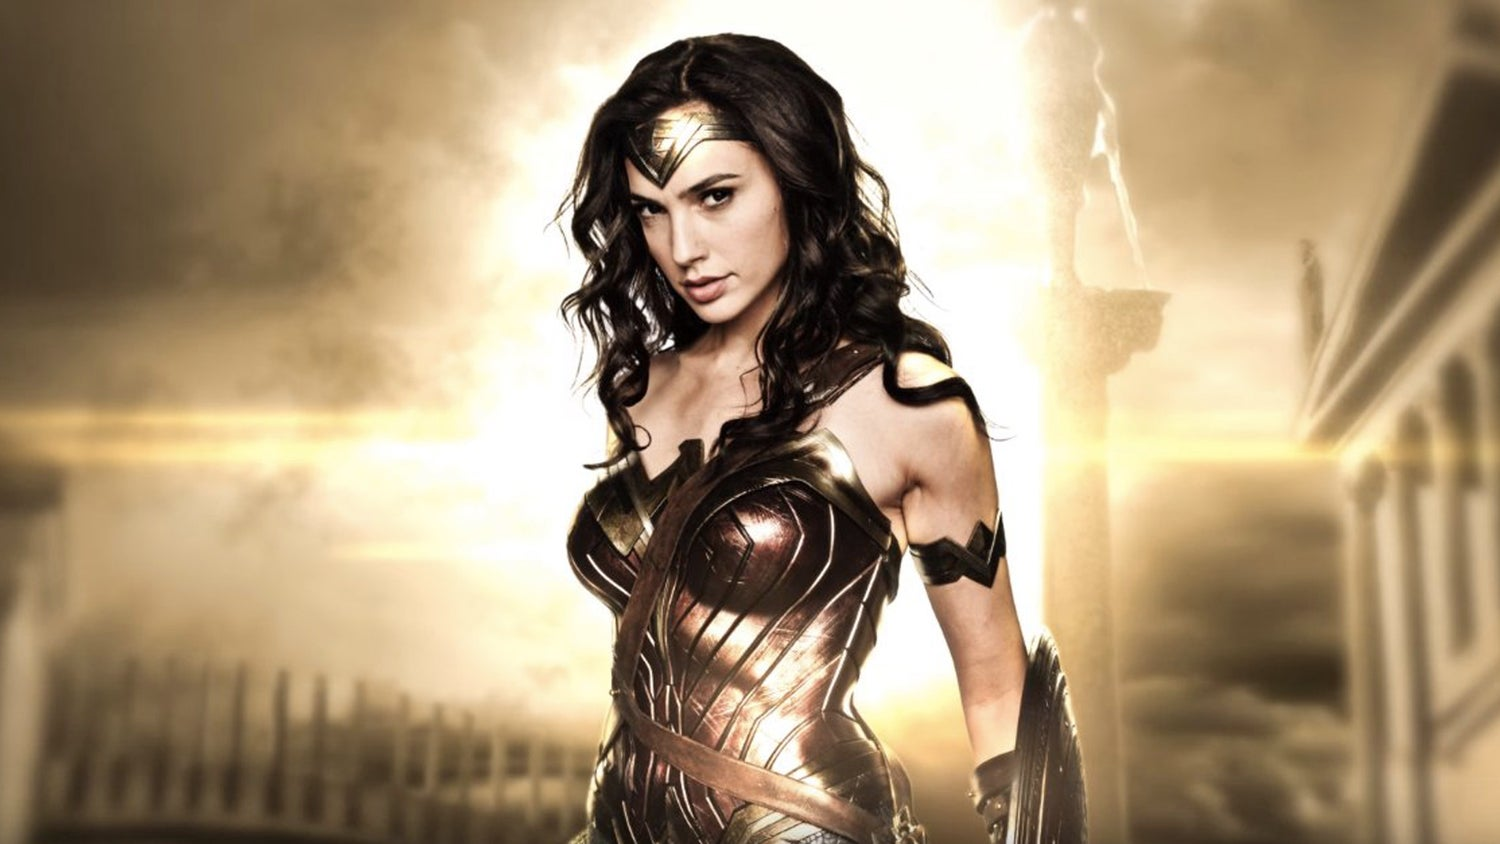 Wonder Woman: Gal Gadot calls for more female superheroes in Twitter